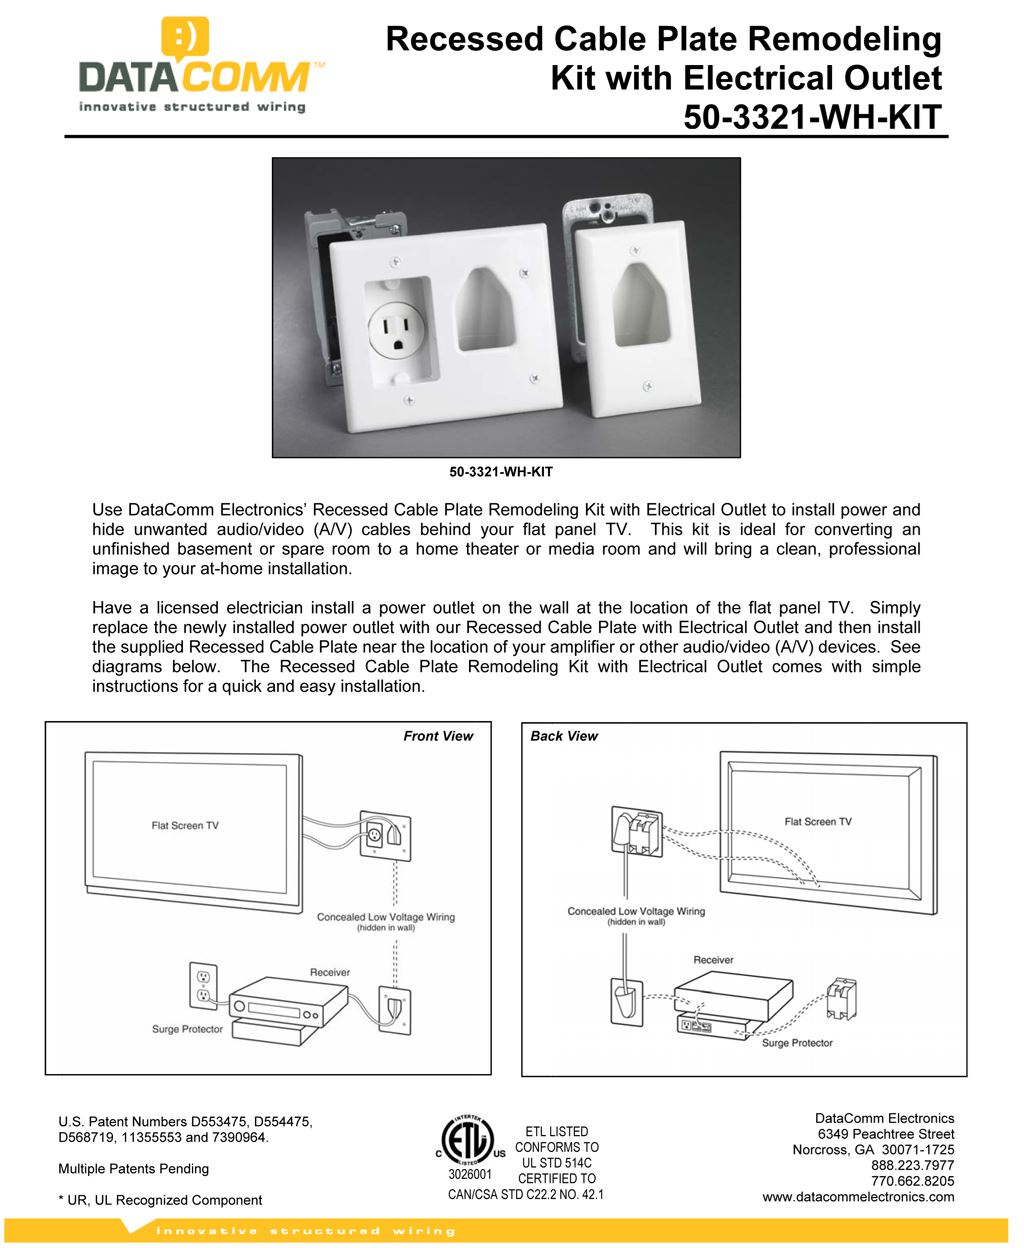 Recessed Wall Plate Remodeling Kit With Electrical Outlet White Av Wiring Plates Picture Of